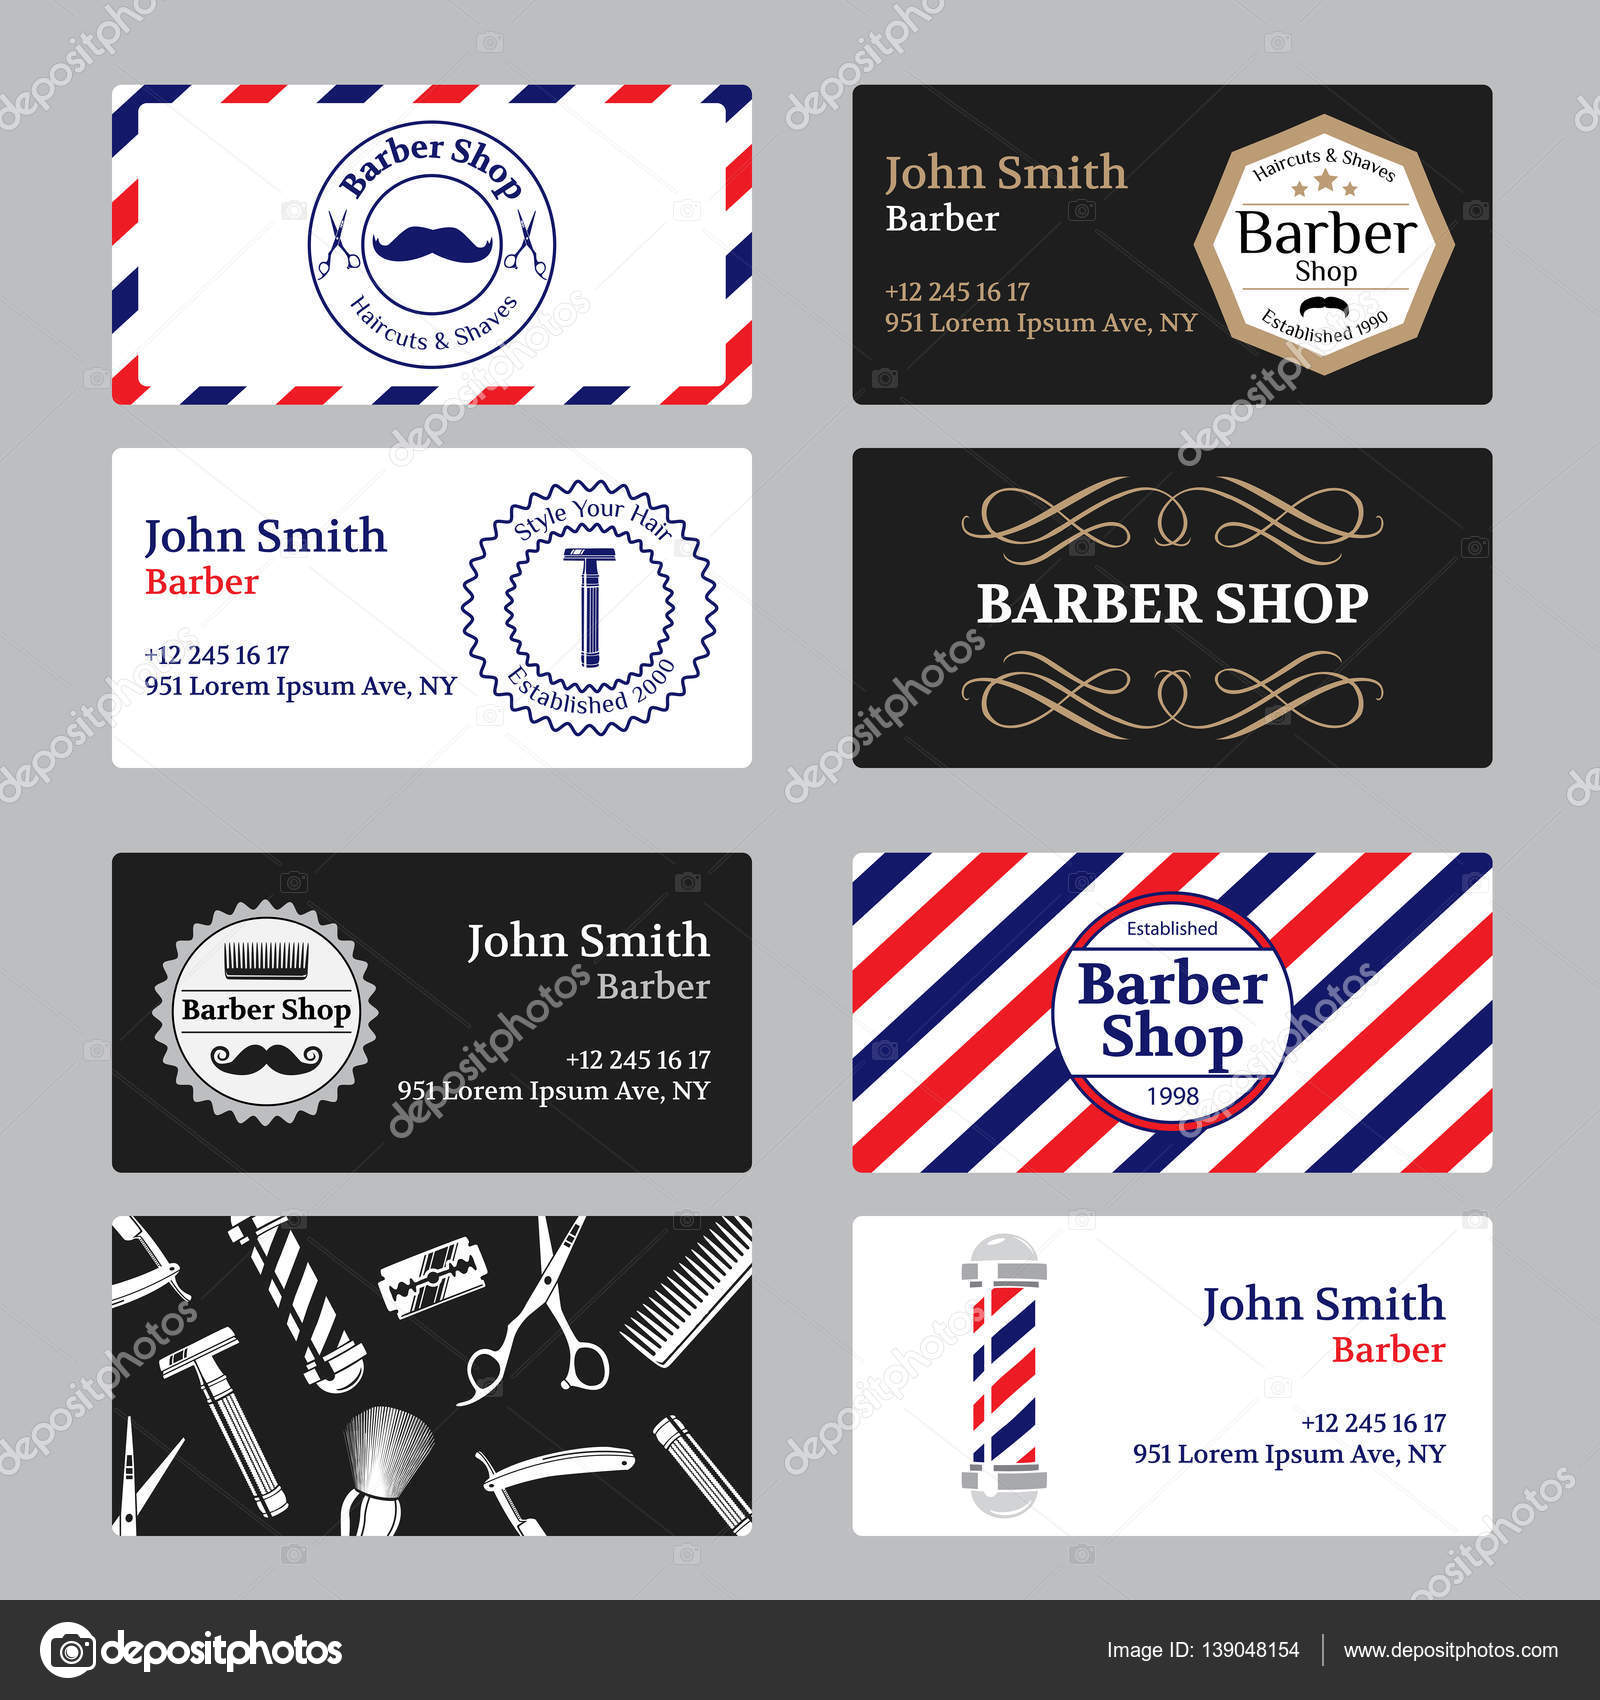 Set of barber shop business card on black and white background set of barber shop business card on black and white background template barber shop business card vector illustration vector by bananulya flashek Choice Image